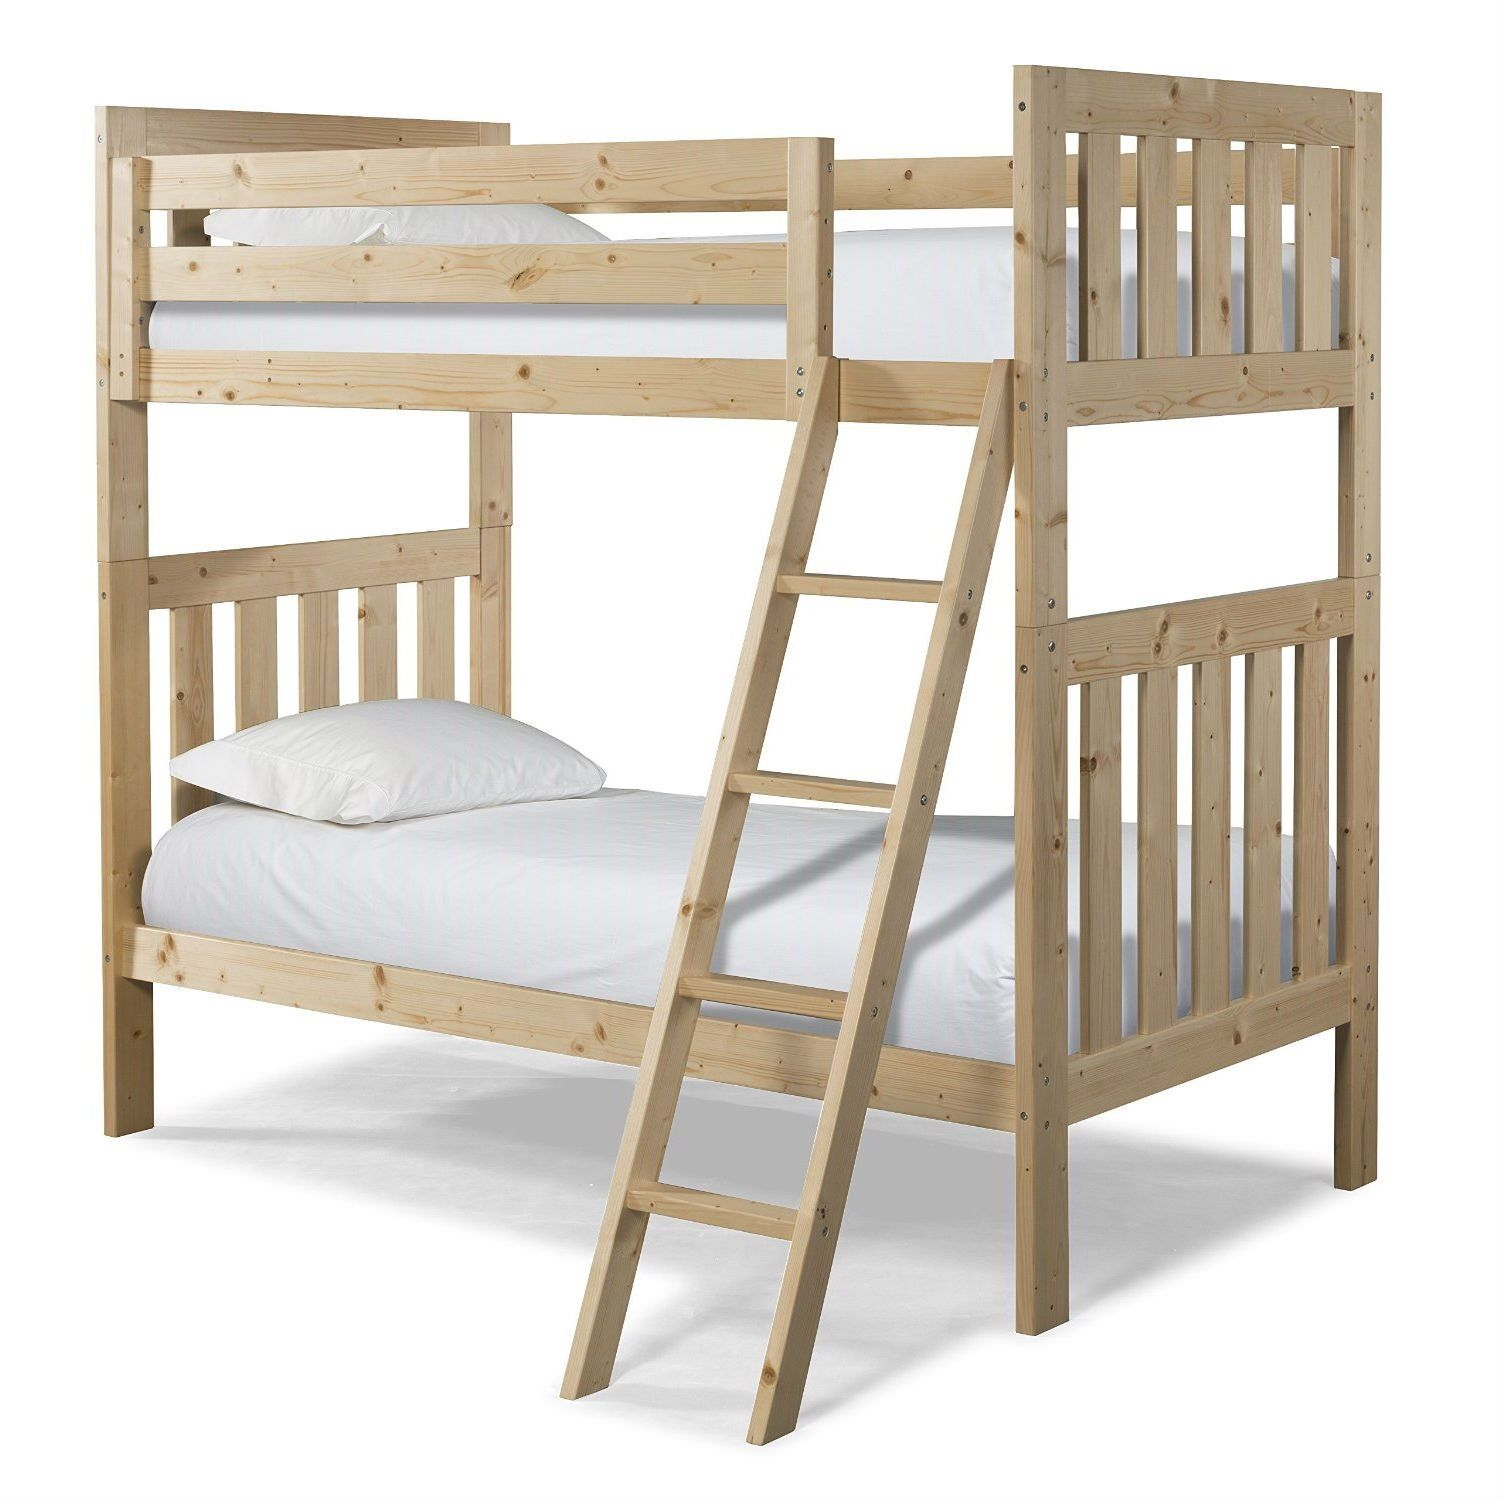 Twin over twin natural pine wood bunk bed with ladder bunk bed